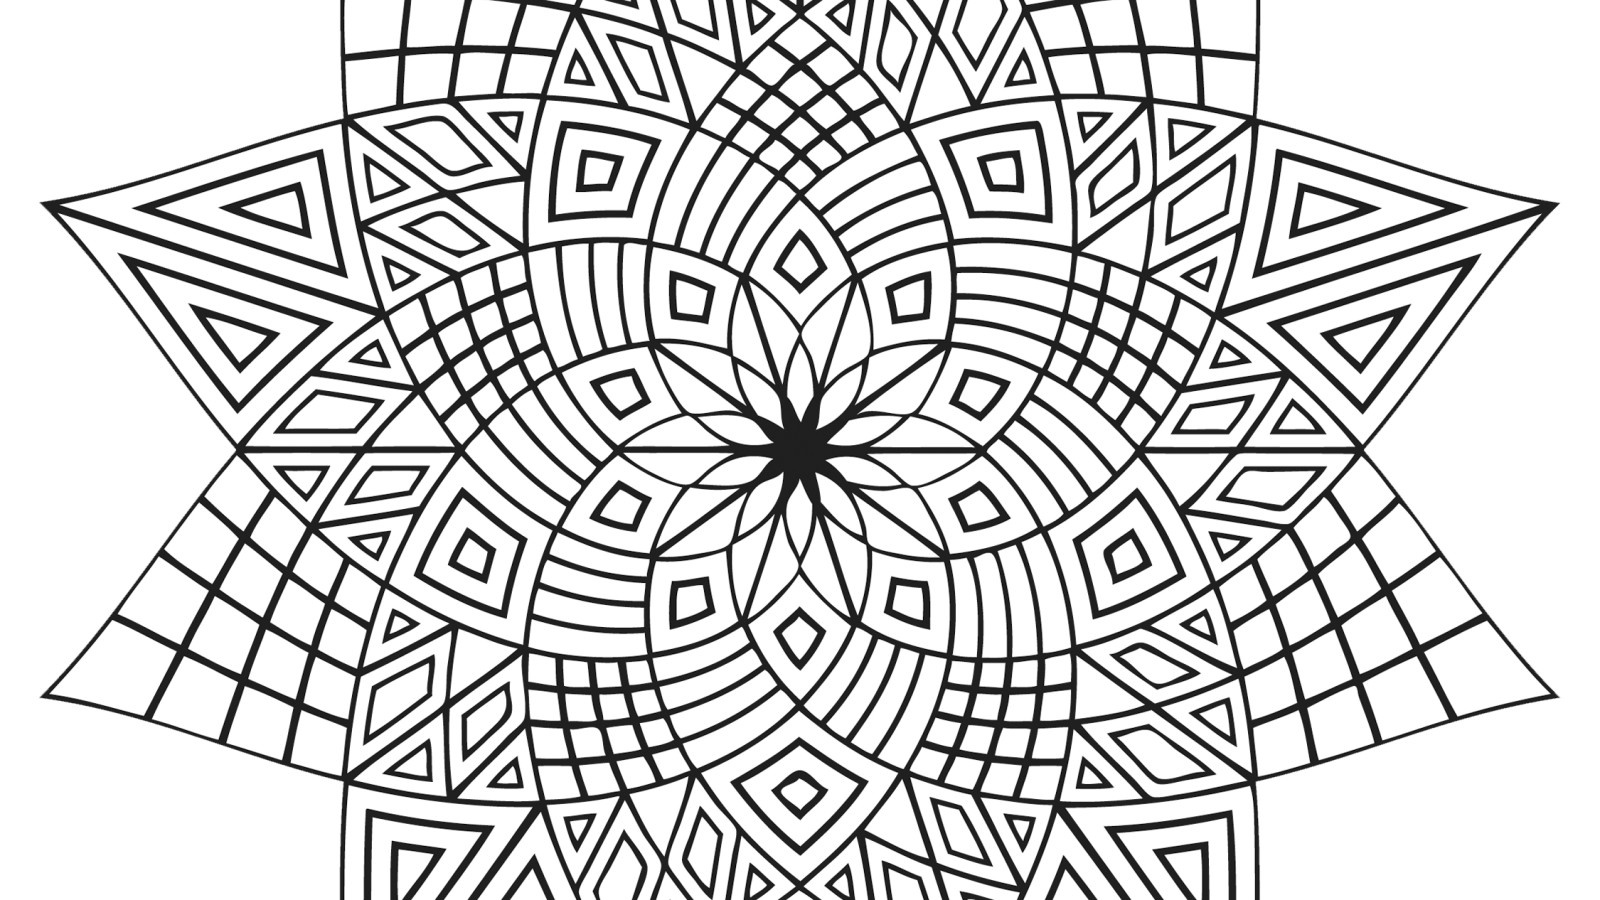 Fun Coloring Pages For 10 Year Olds At Getcolorings